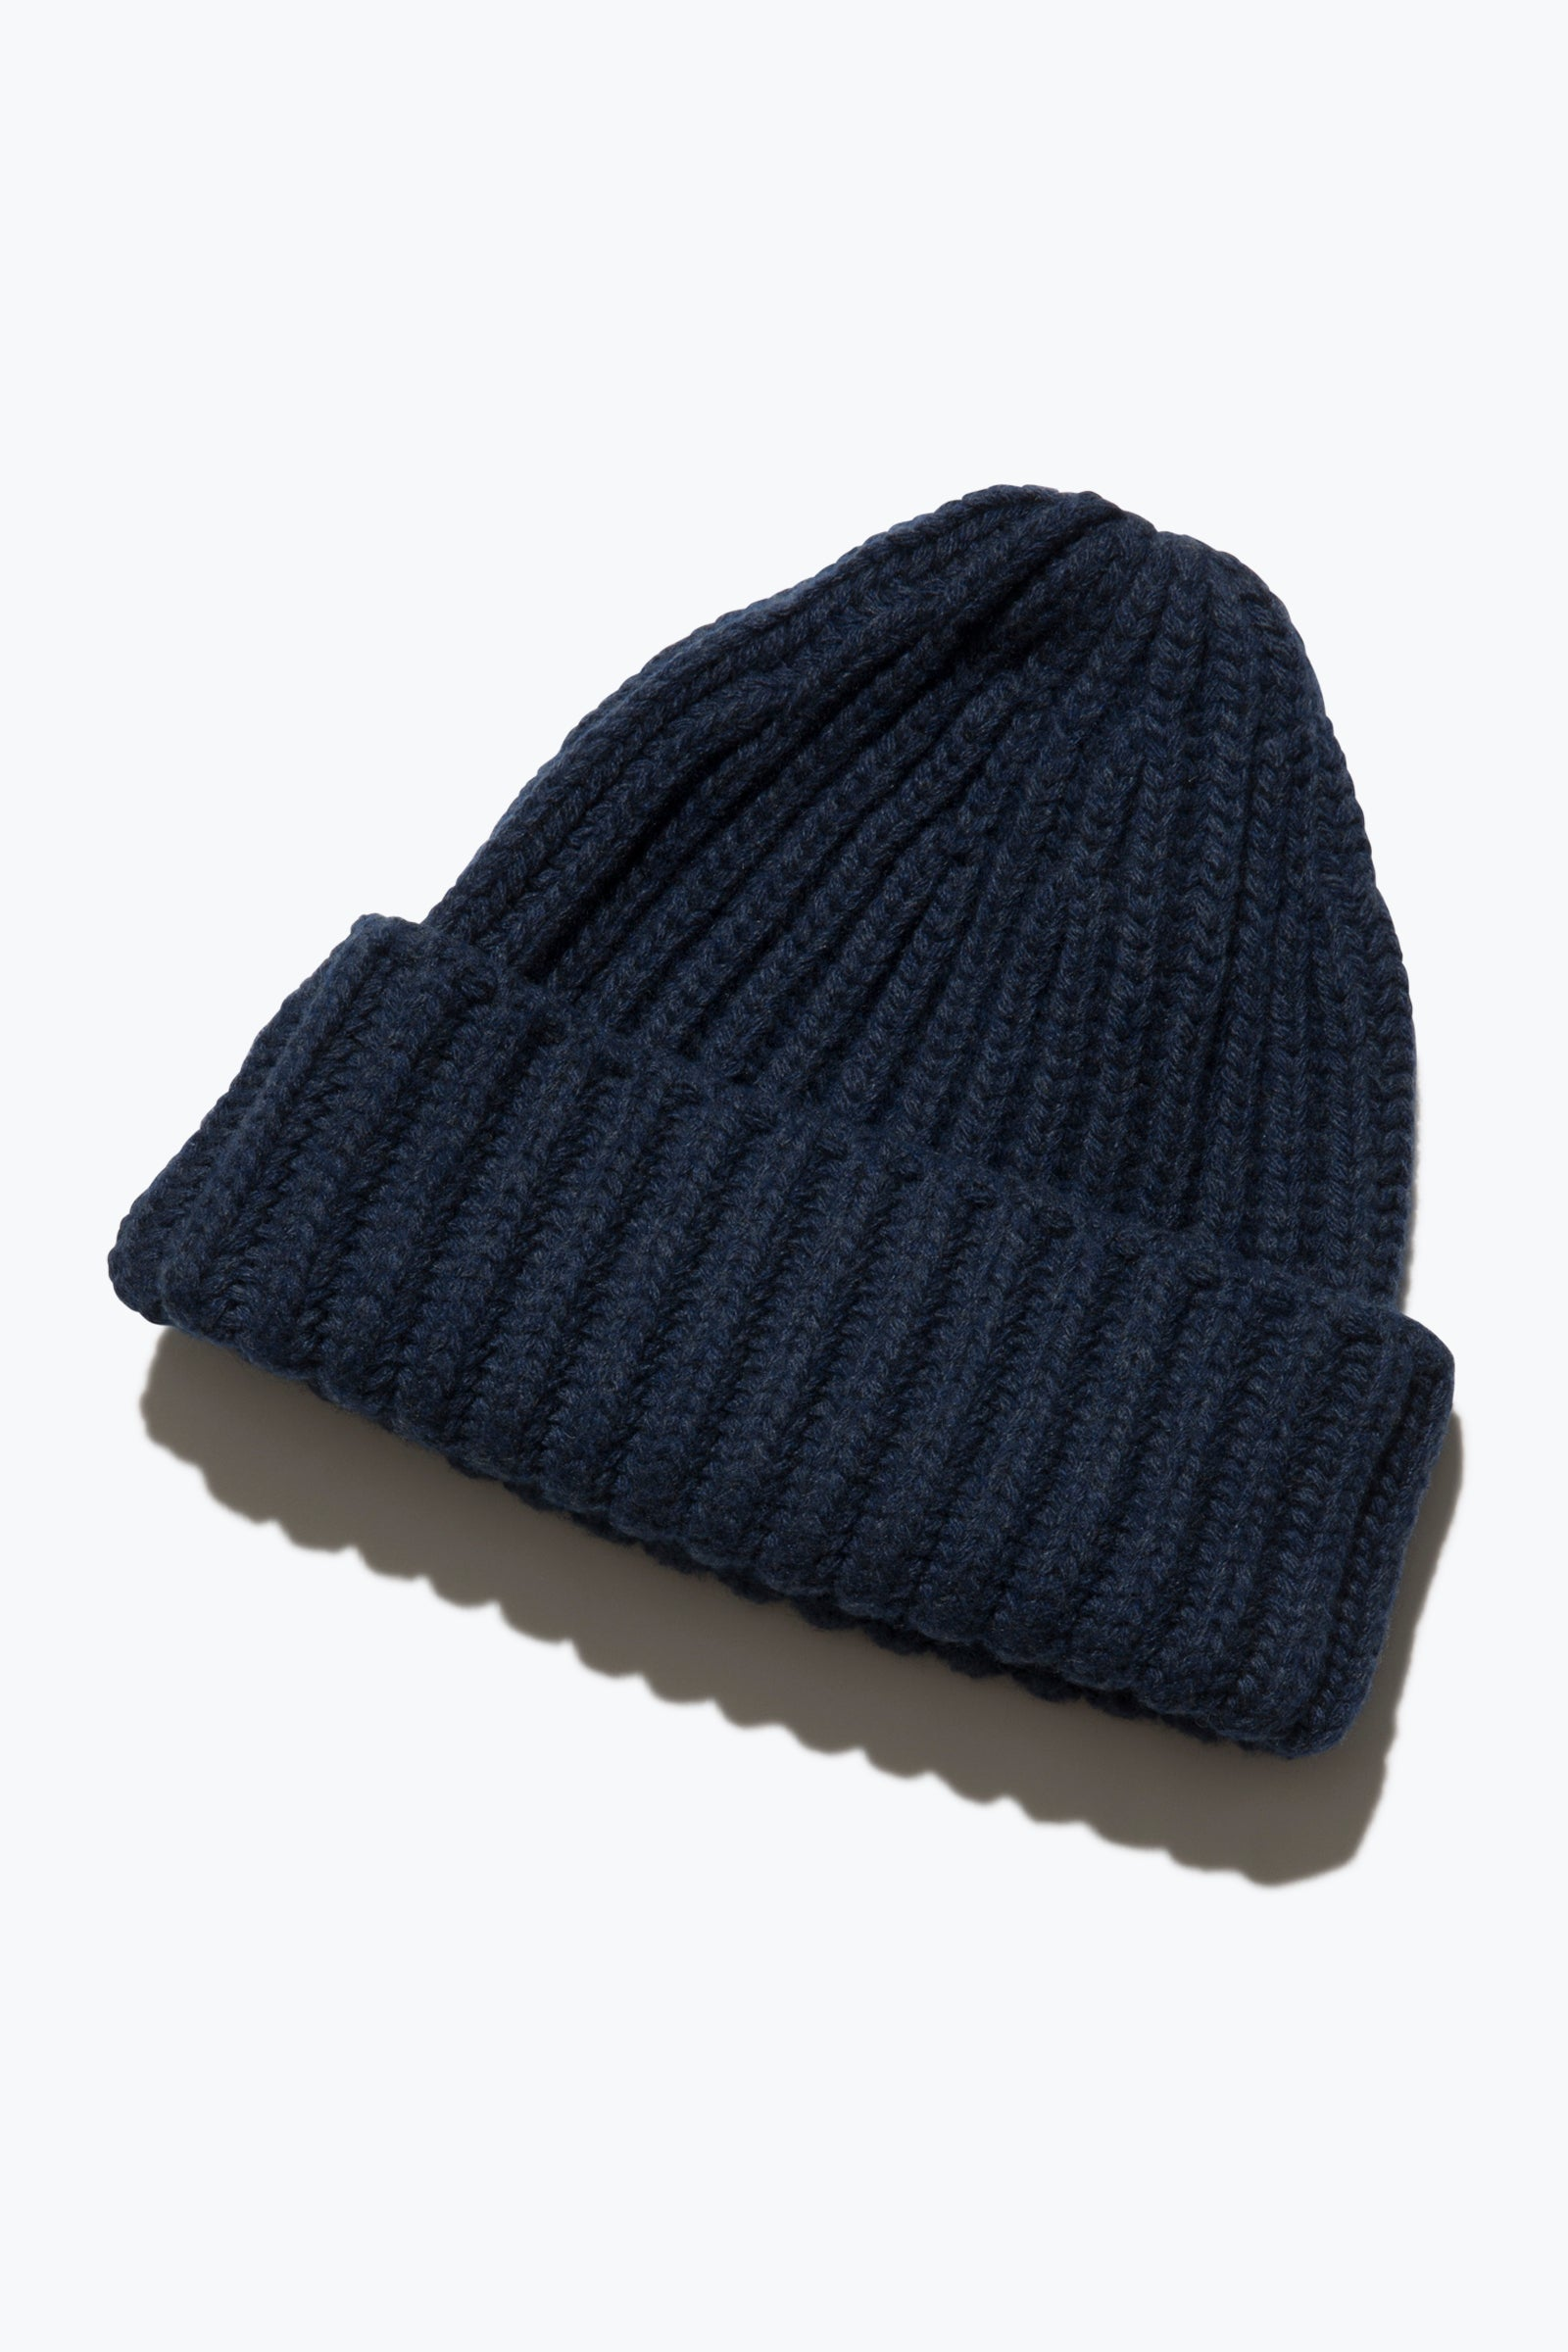 Sweaters - Watch Cap (Dark Indigo)